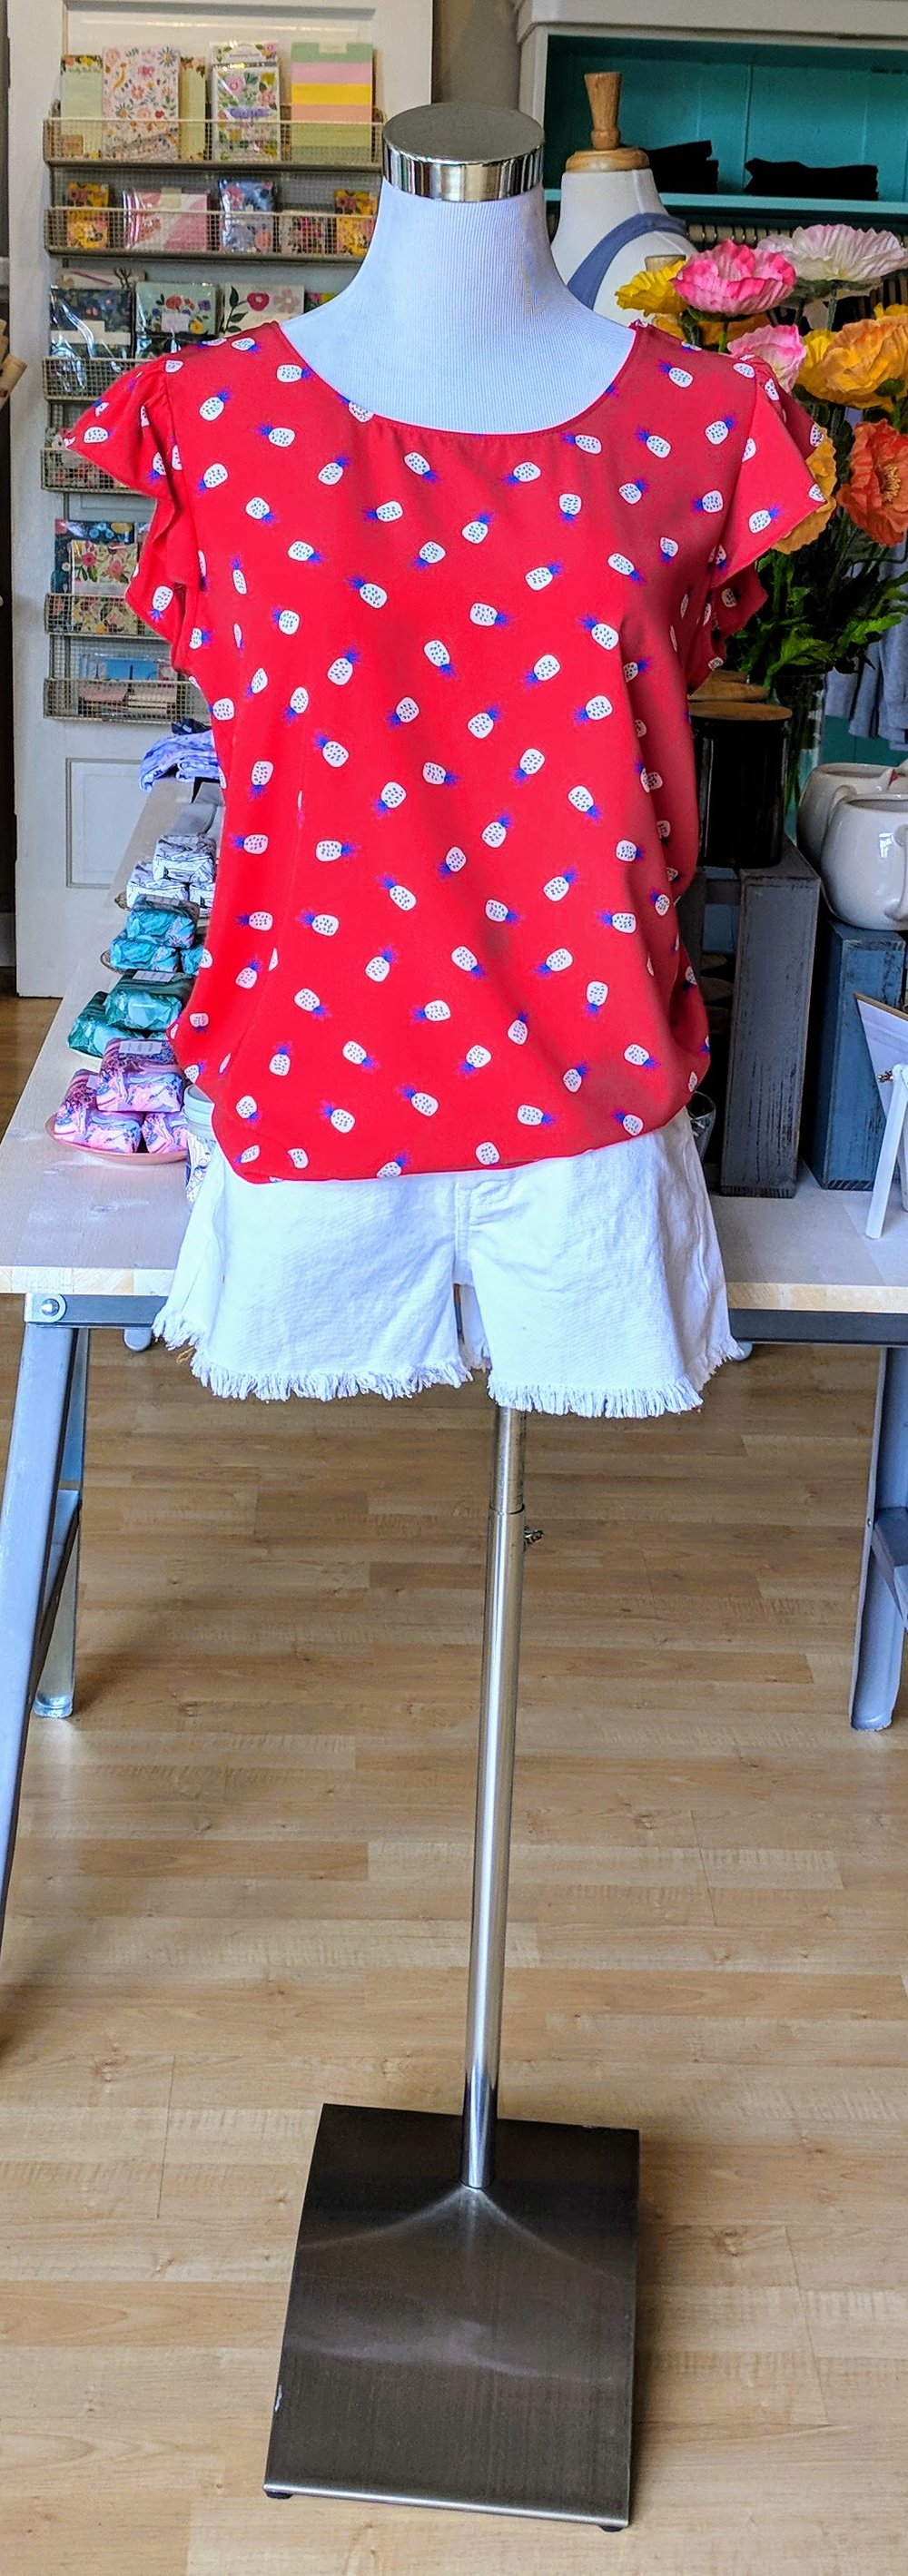 Coral pineapple top with flutter sleeve.